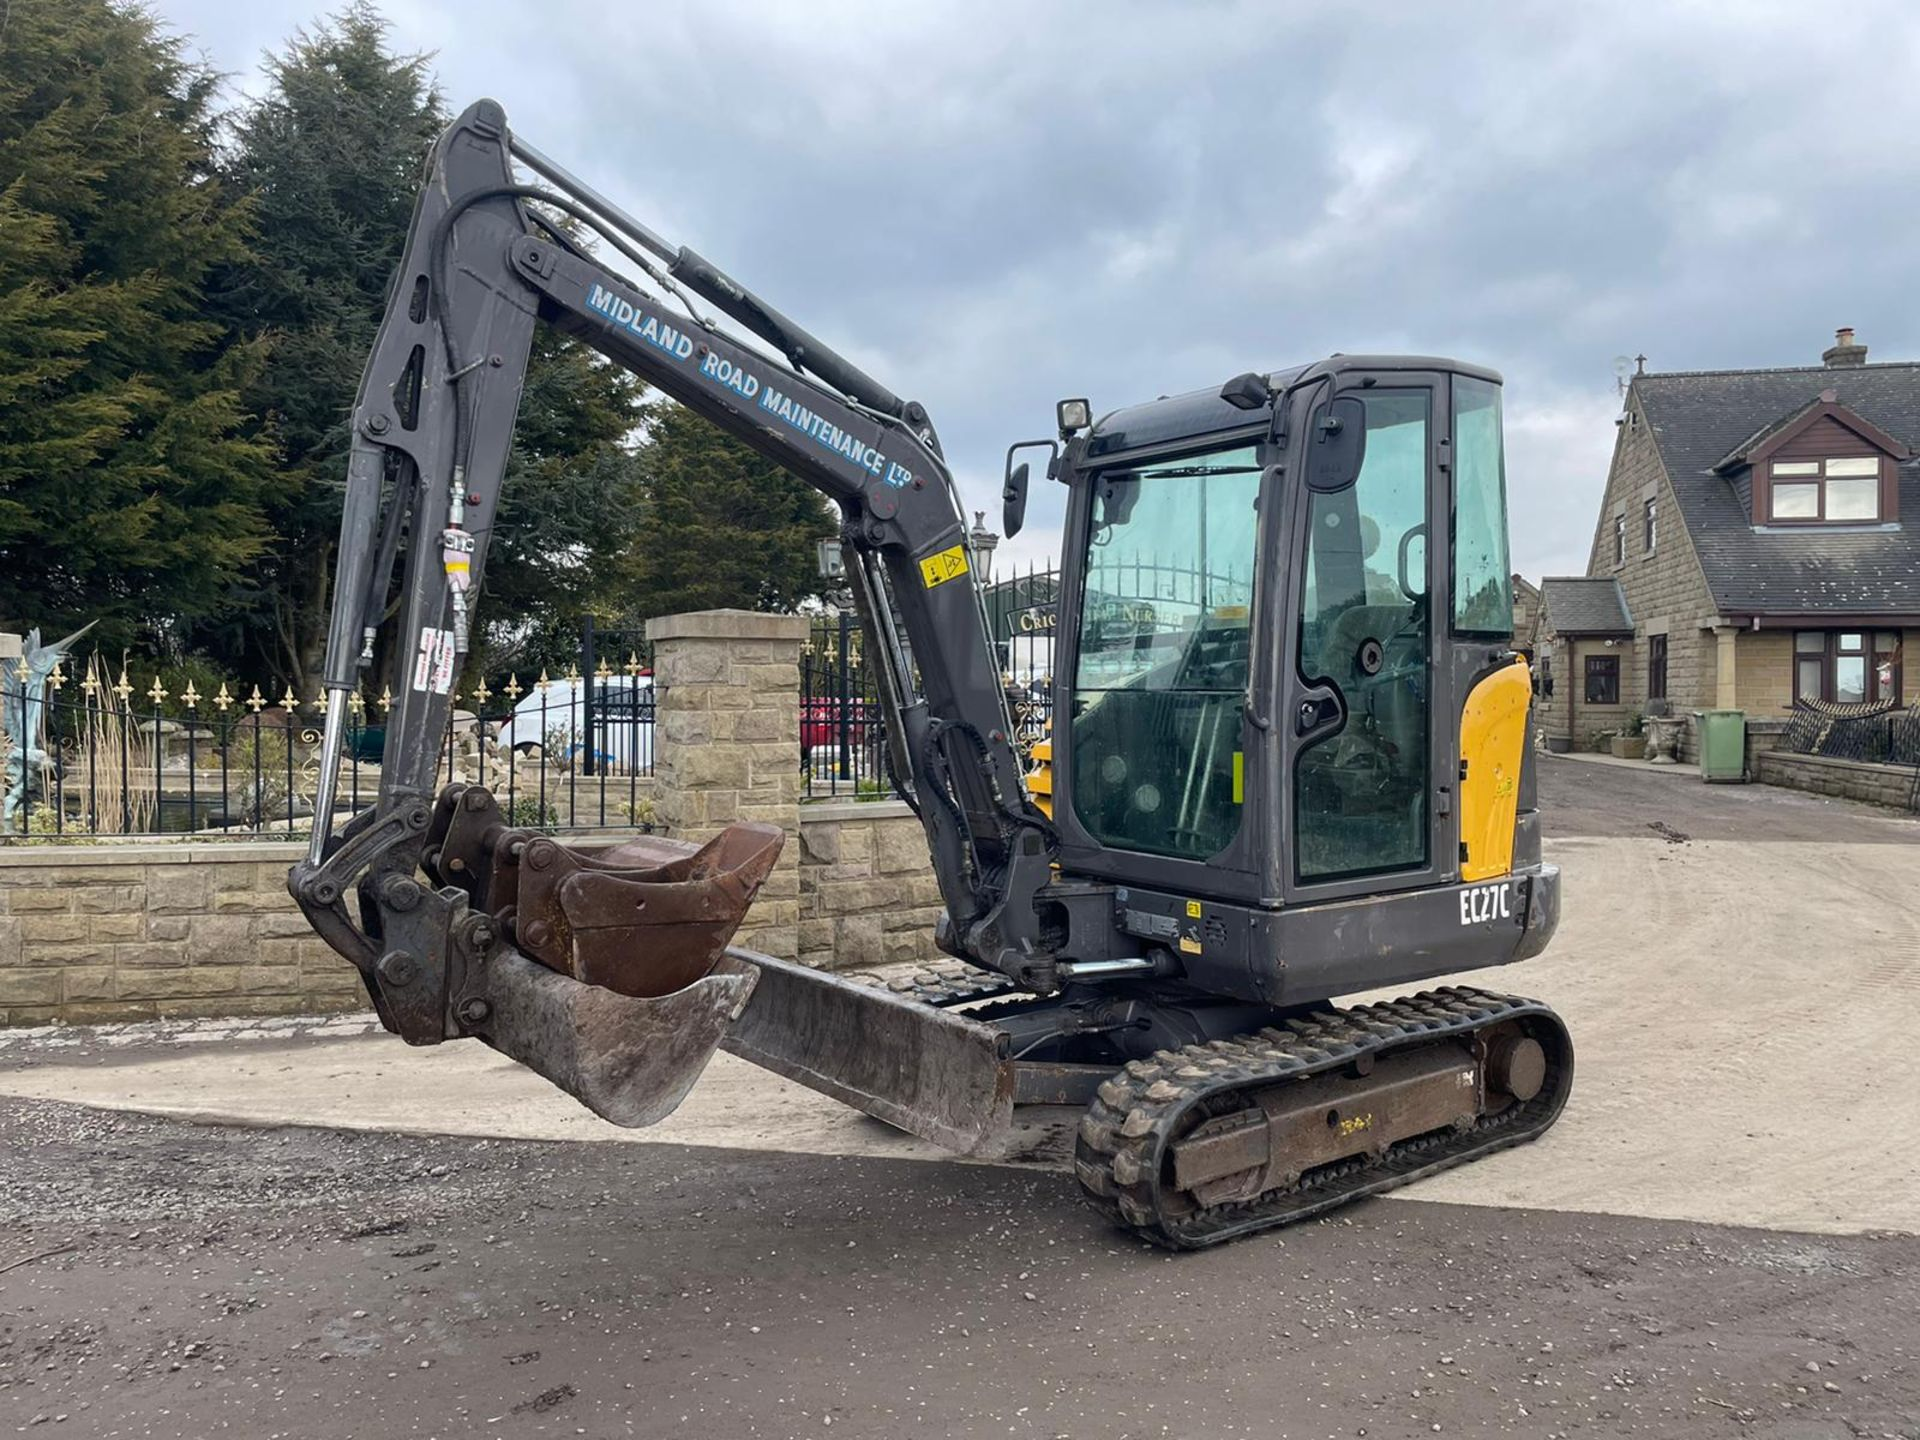 2013 VOLVO EC27C EXCAVATOR RUNS, DRIVES AND DIGS, X3 BUCKETS INCLUDED - Image 2 of 8